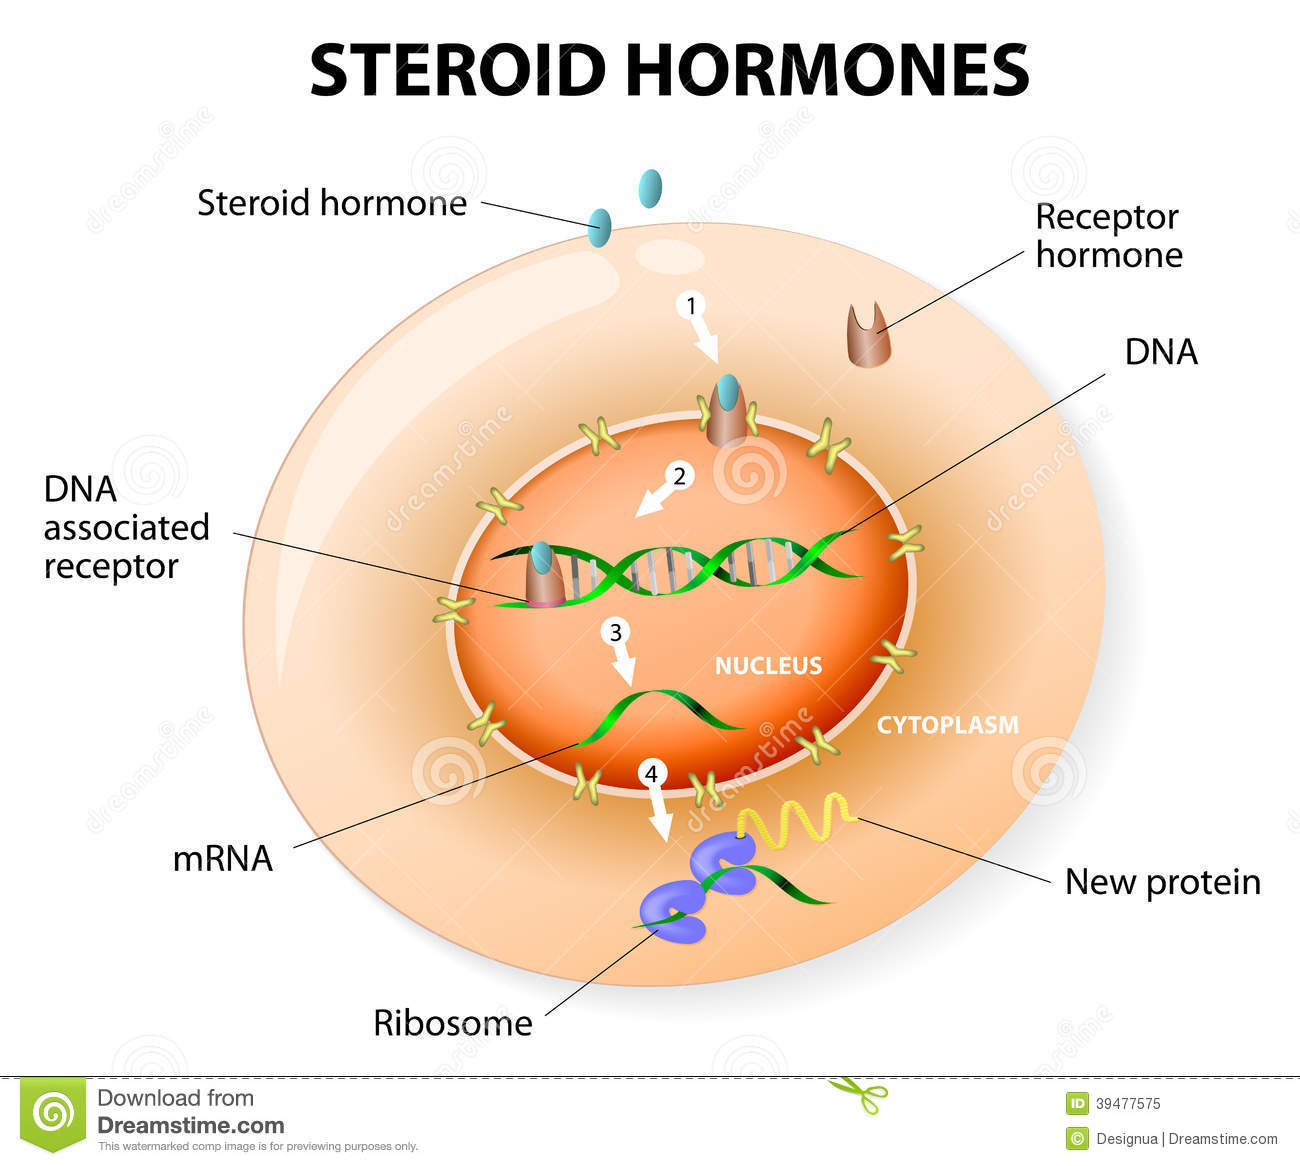 anabolic steroids in cancer treatment